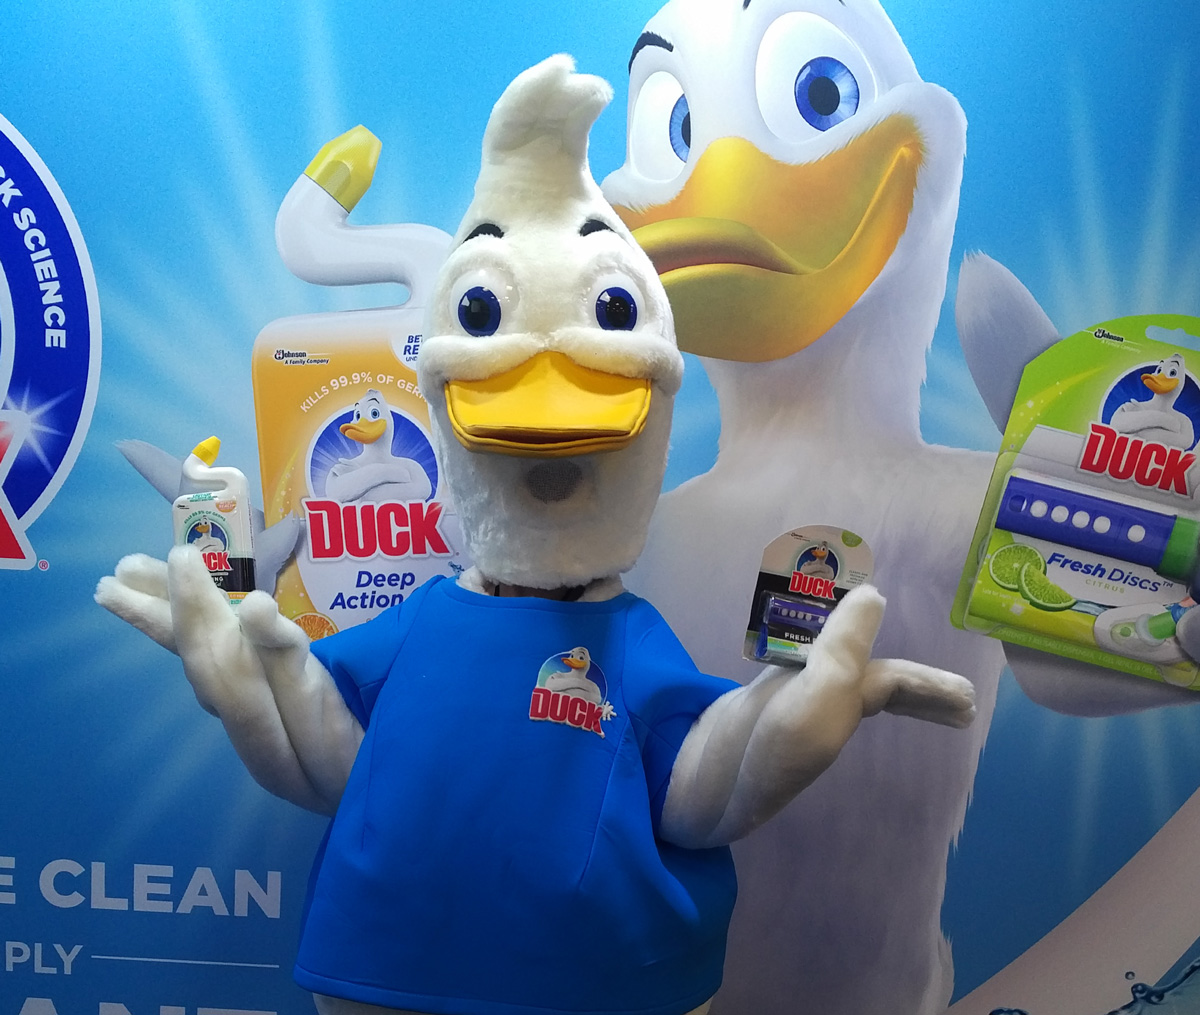 A mascot character performer posing with a product during a trade show